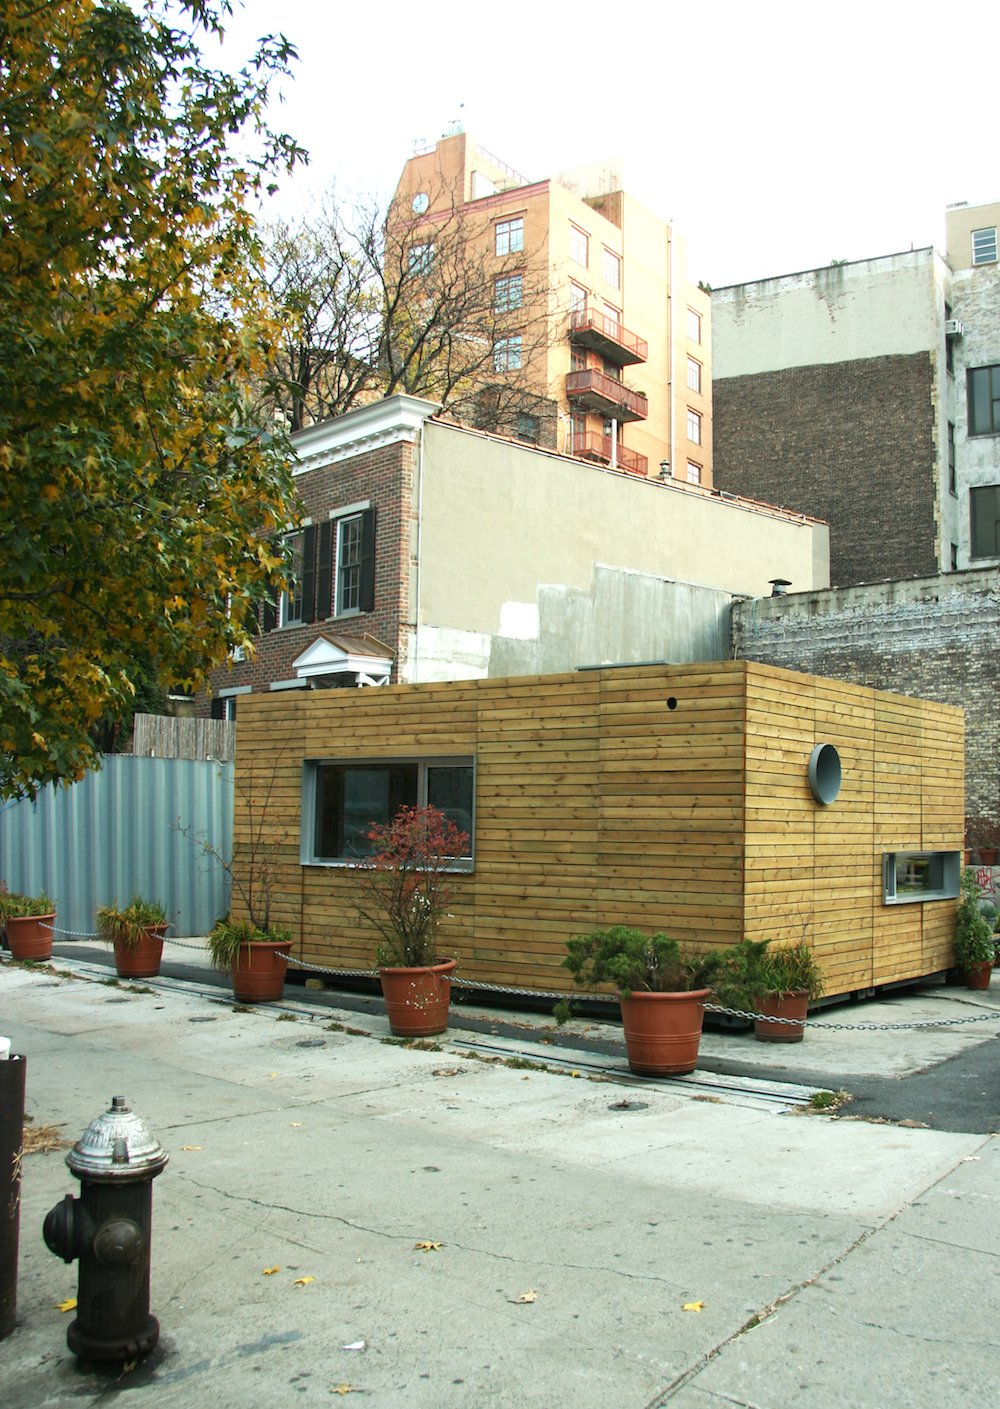 Exterior, House, Shipping Container, and Wood The sleek 320-square-foot MEKA home, designed by Jason Halter and Christos Marcopoulous, when it was set up in New York. The home is made of cedar paneling, set over a steel shipping container.  Exterior House Wood Shipping Container Photos from Inexpensive, Easy-Assembly Shipping Container Home